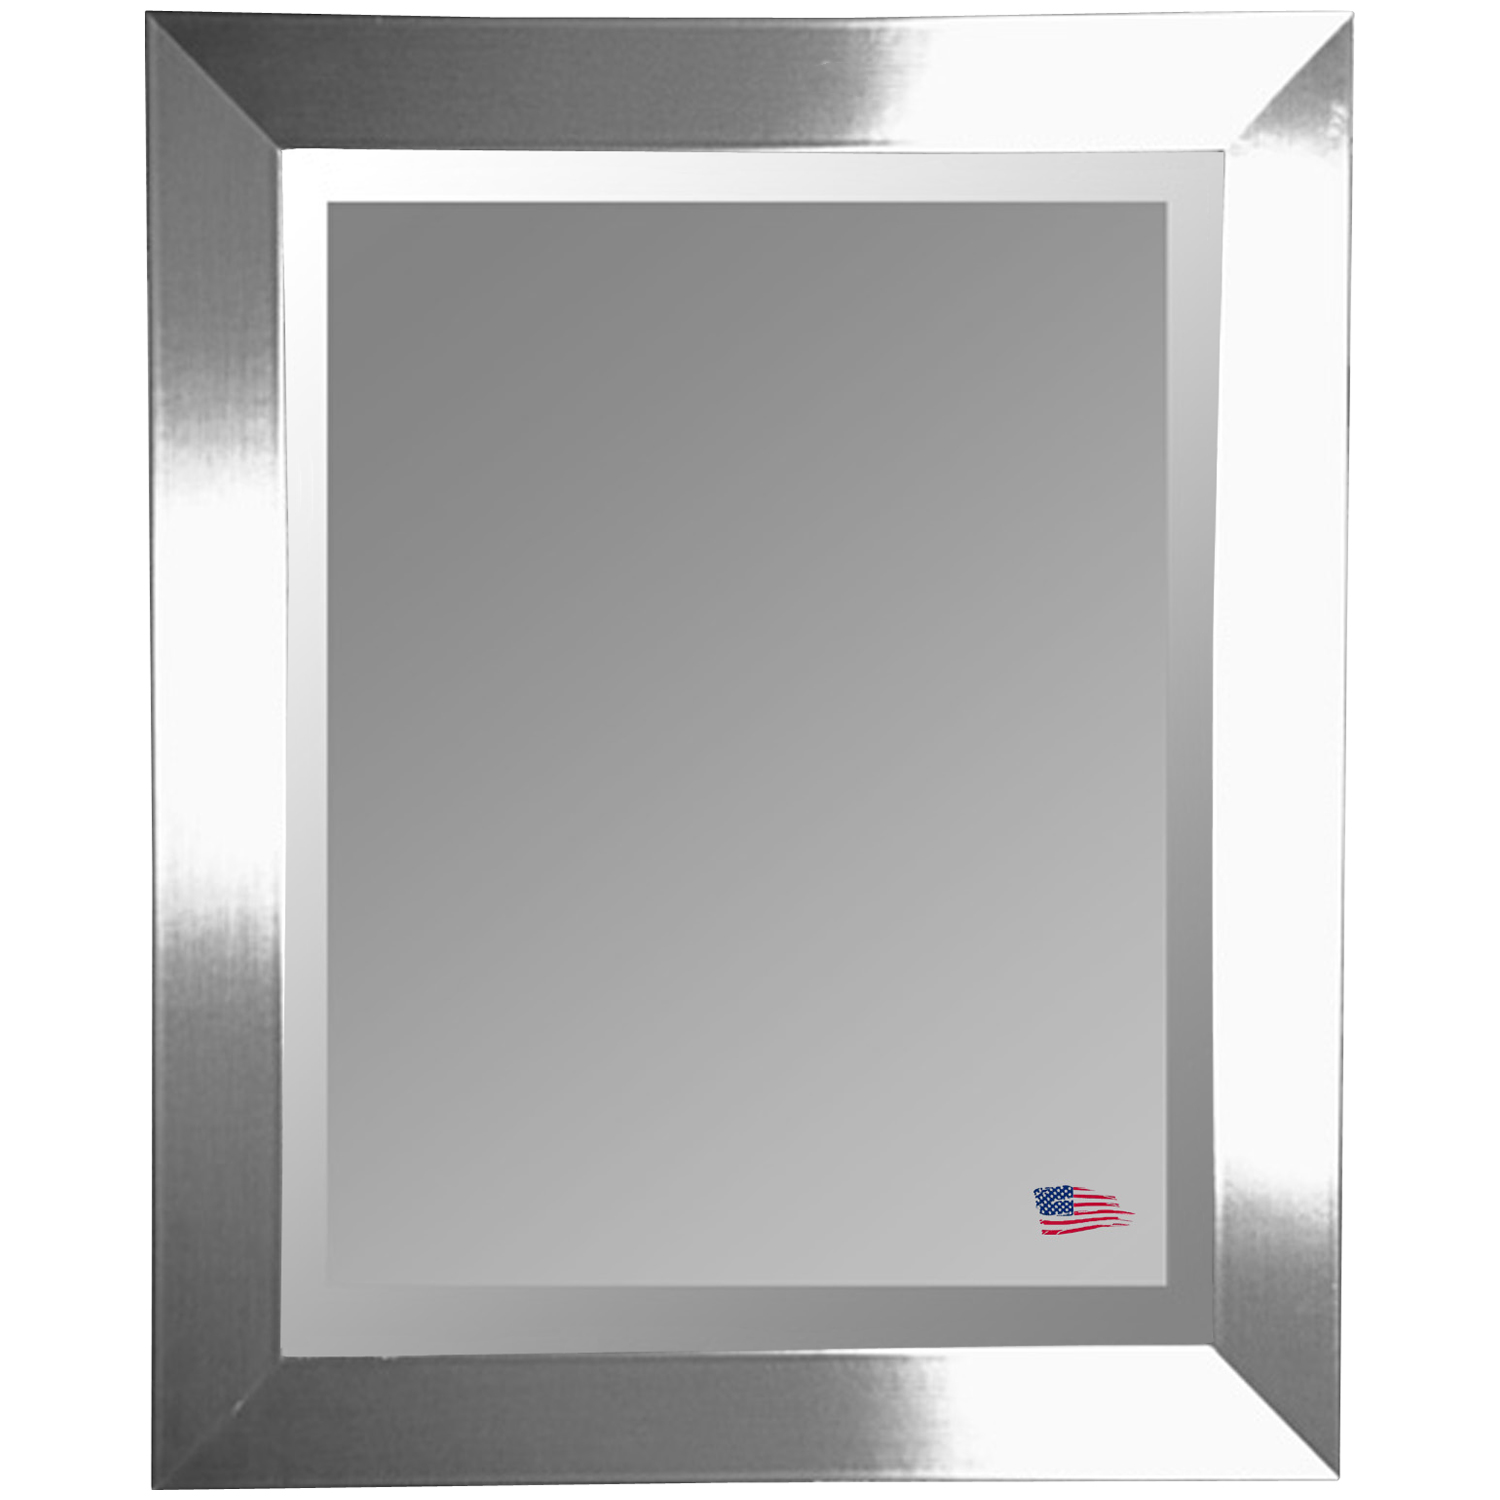 Contemporary Hanging Mirror - Thick Silver Frame, Beveled Glass - RAY-R003